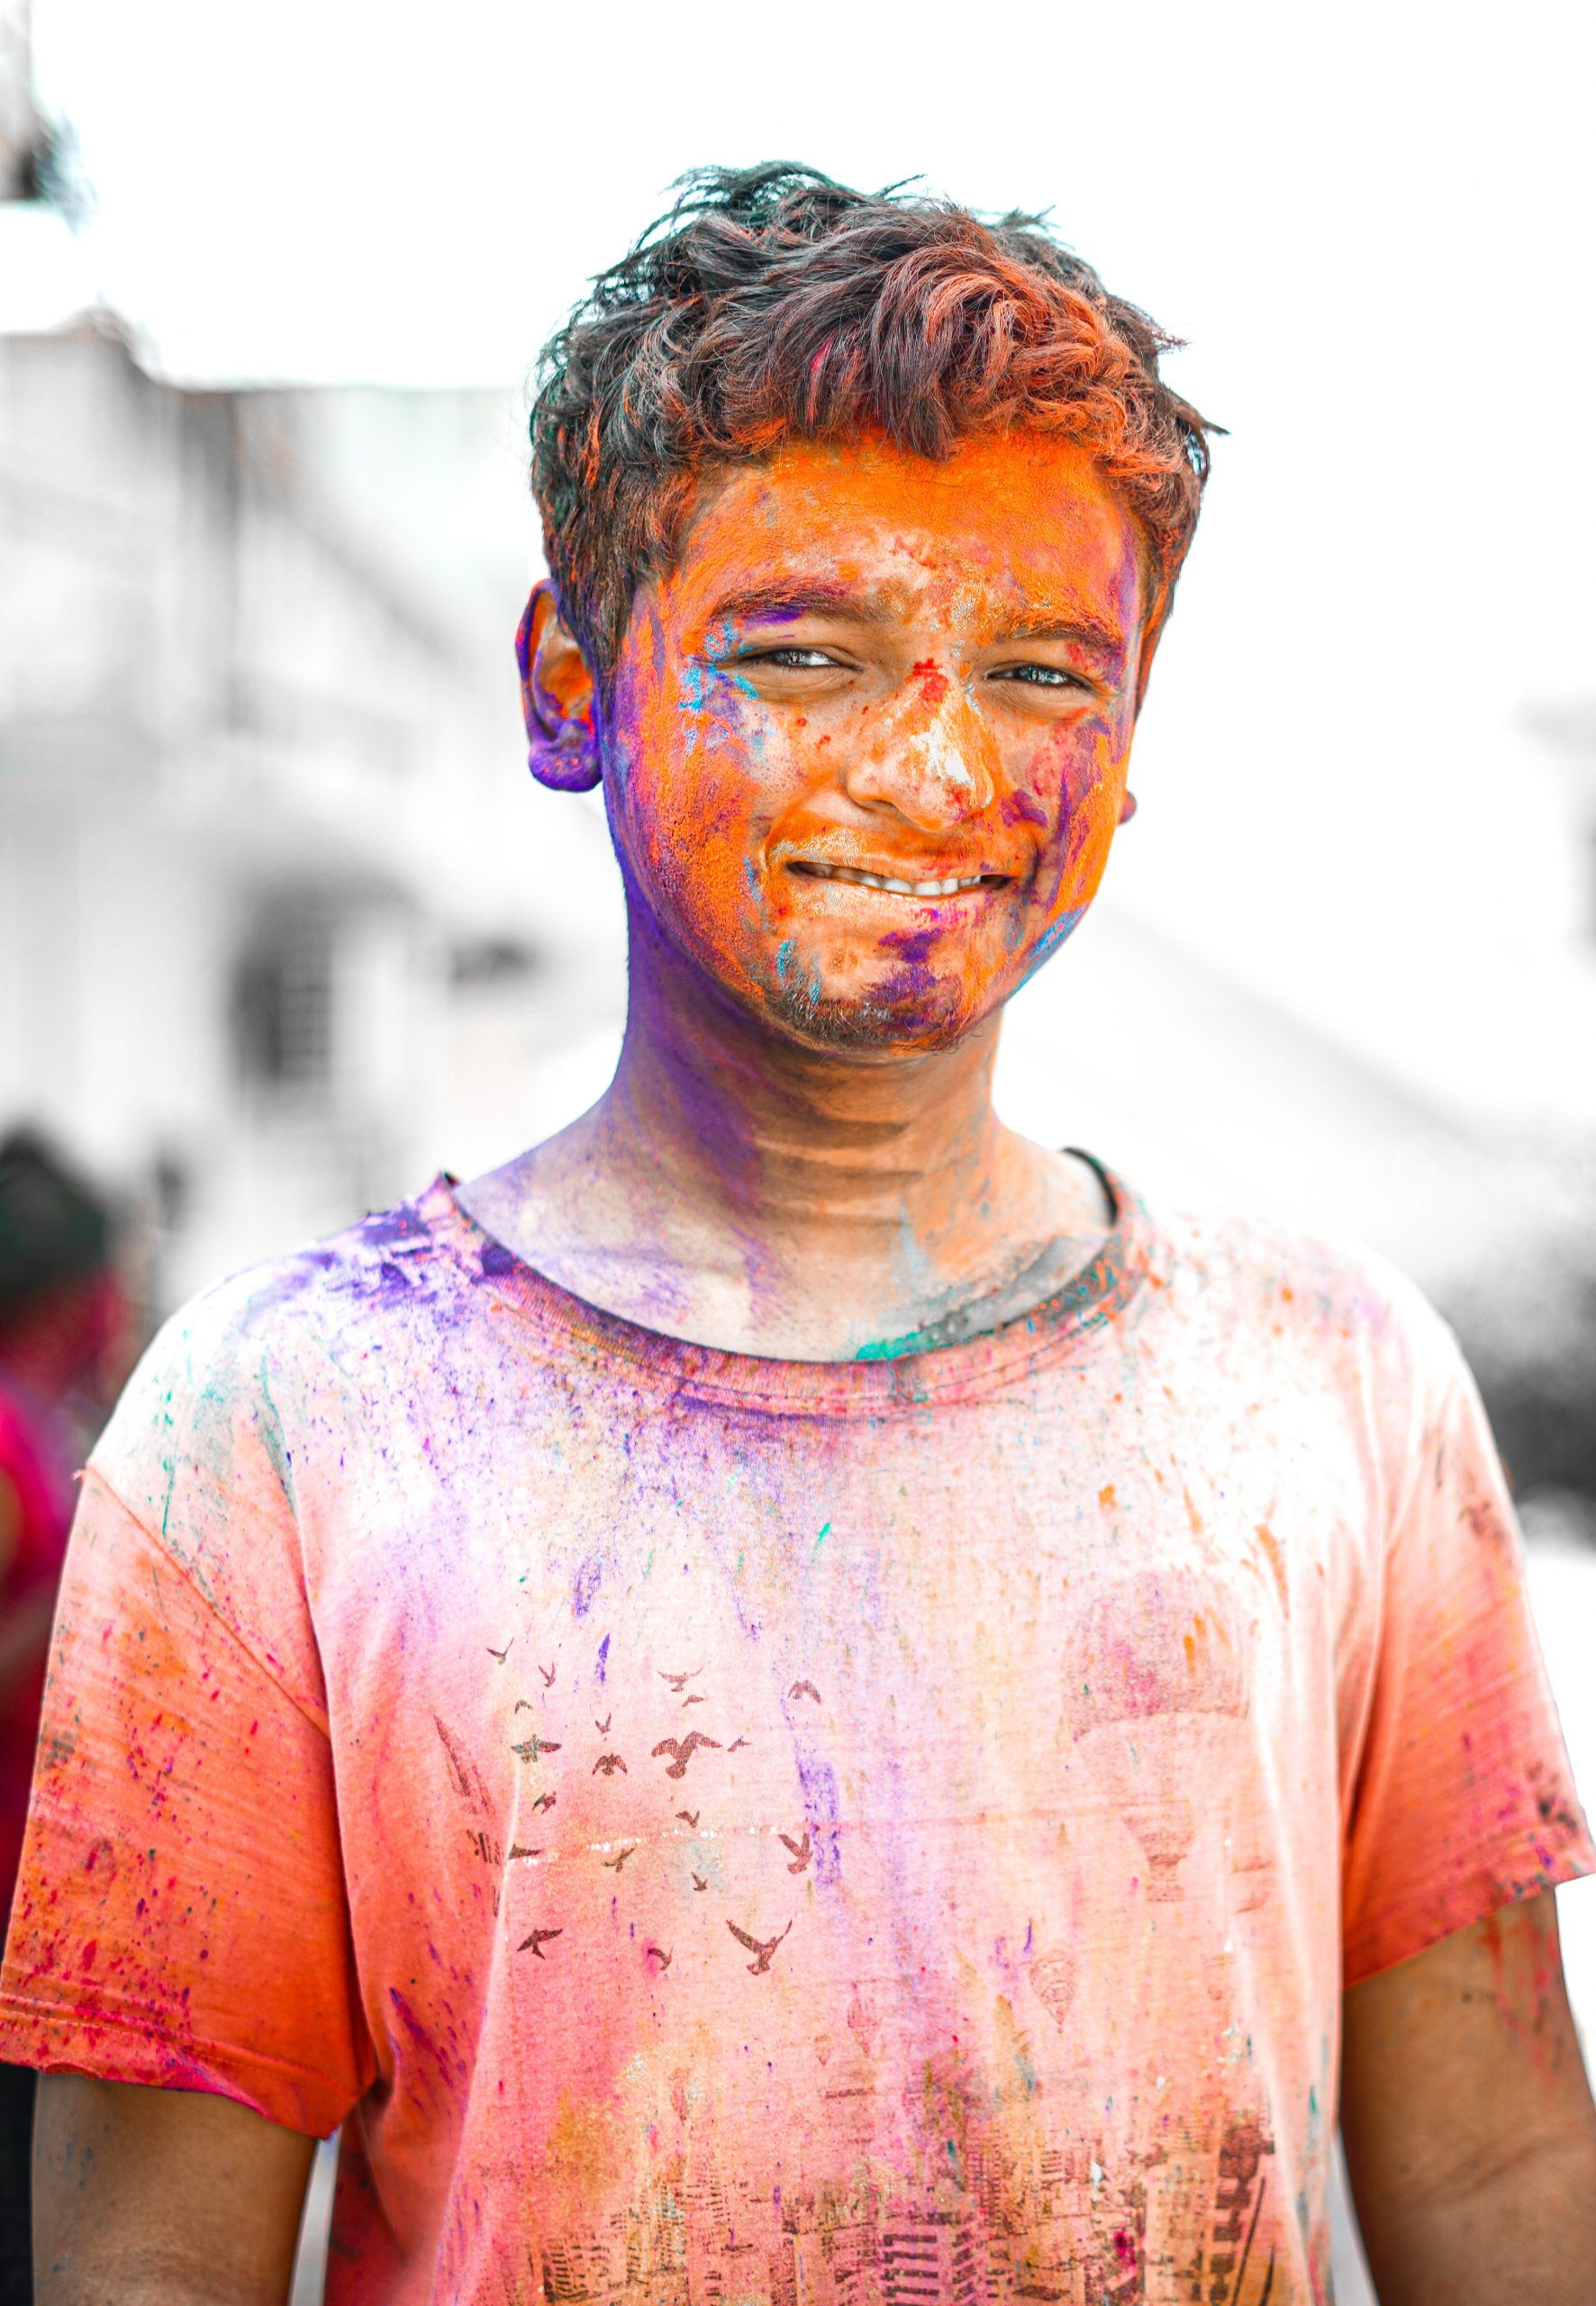 Boy covered in multicolored powder